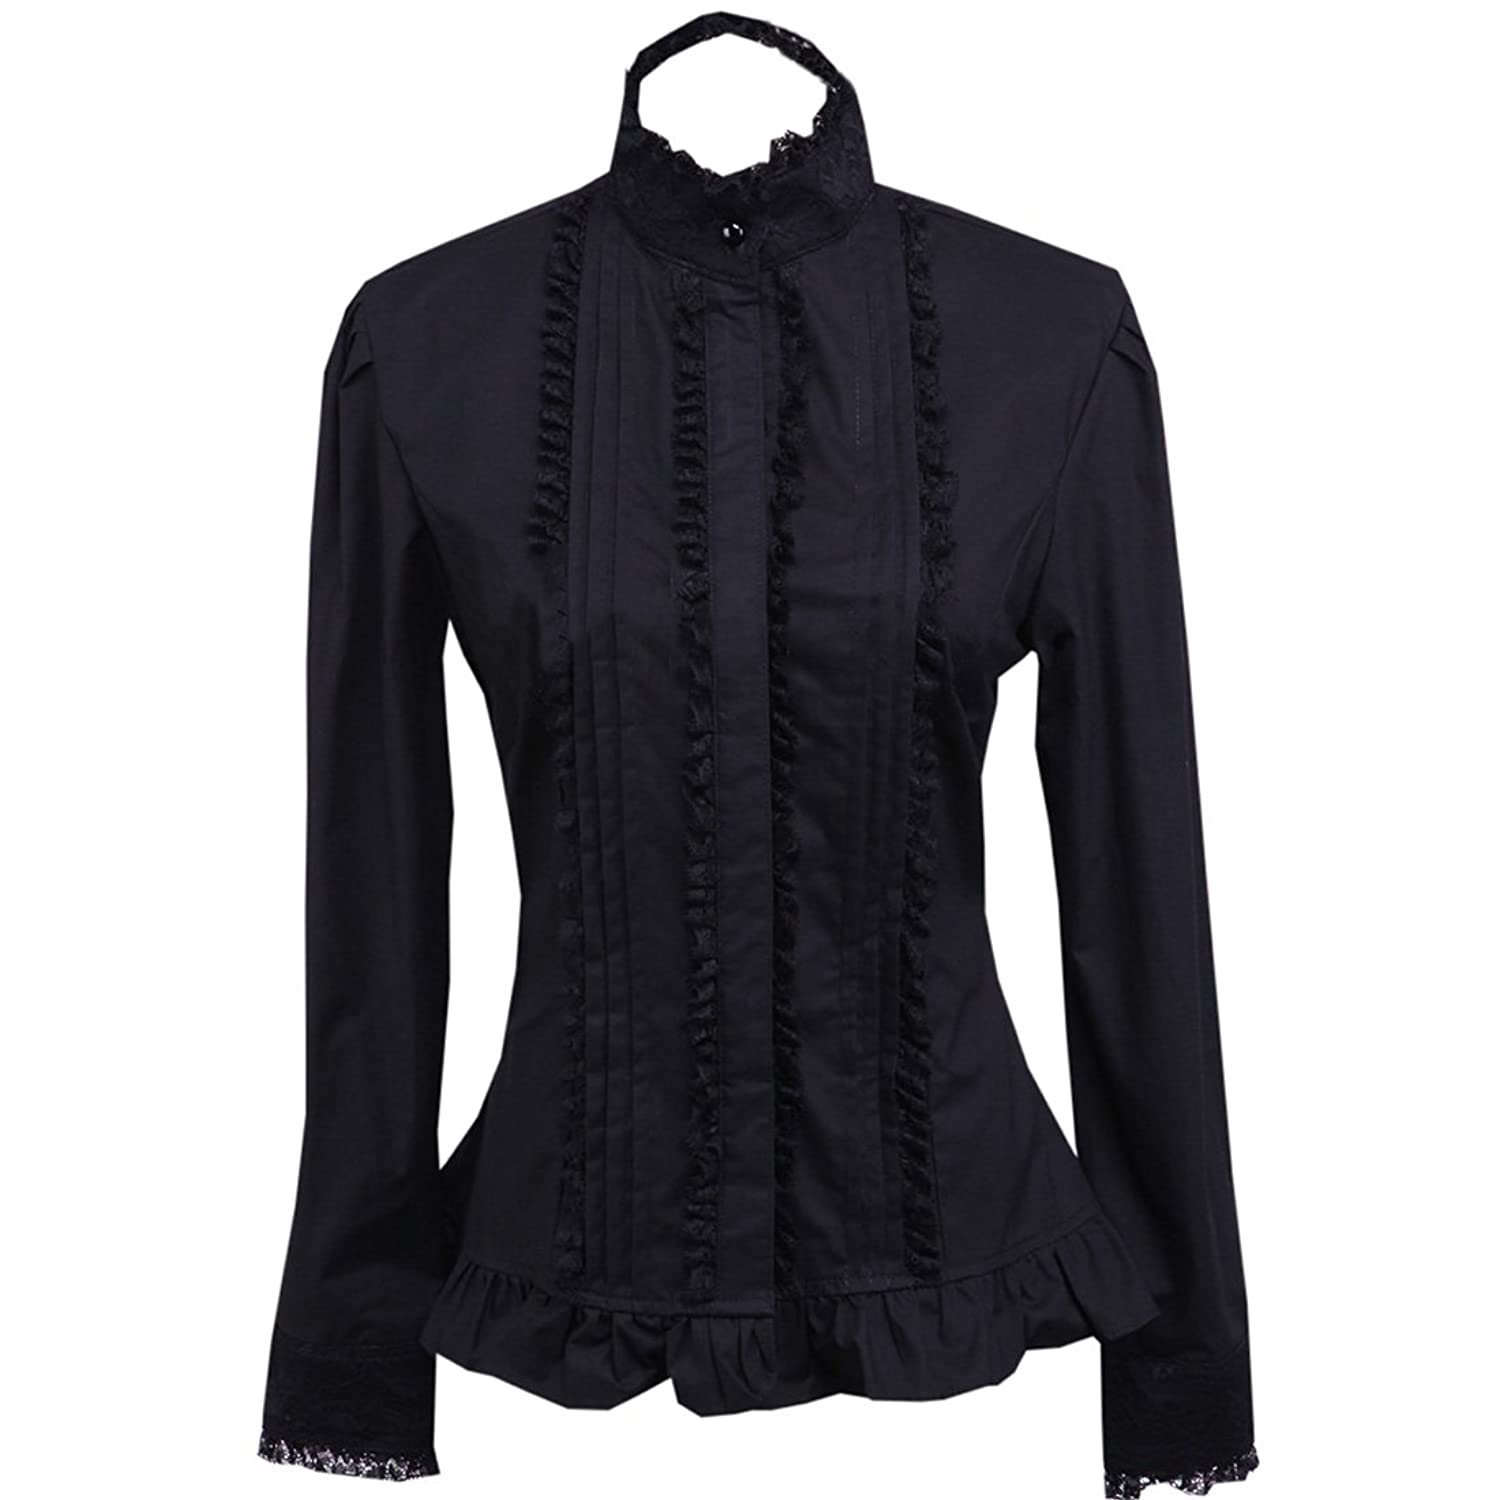 Victorian Blouses, Tops, Shirts, Vests Partiss Womens Black Pintucks Lolita Blouse $29.99 AT vintagedancer.com